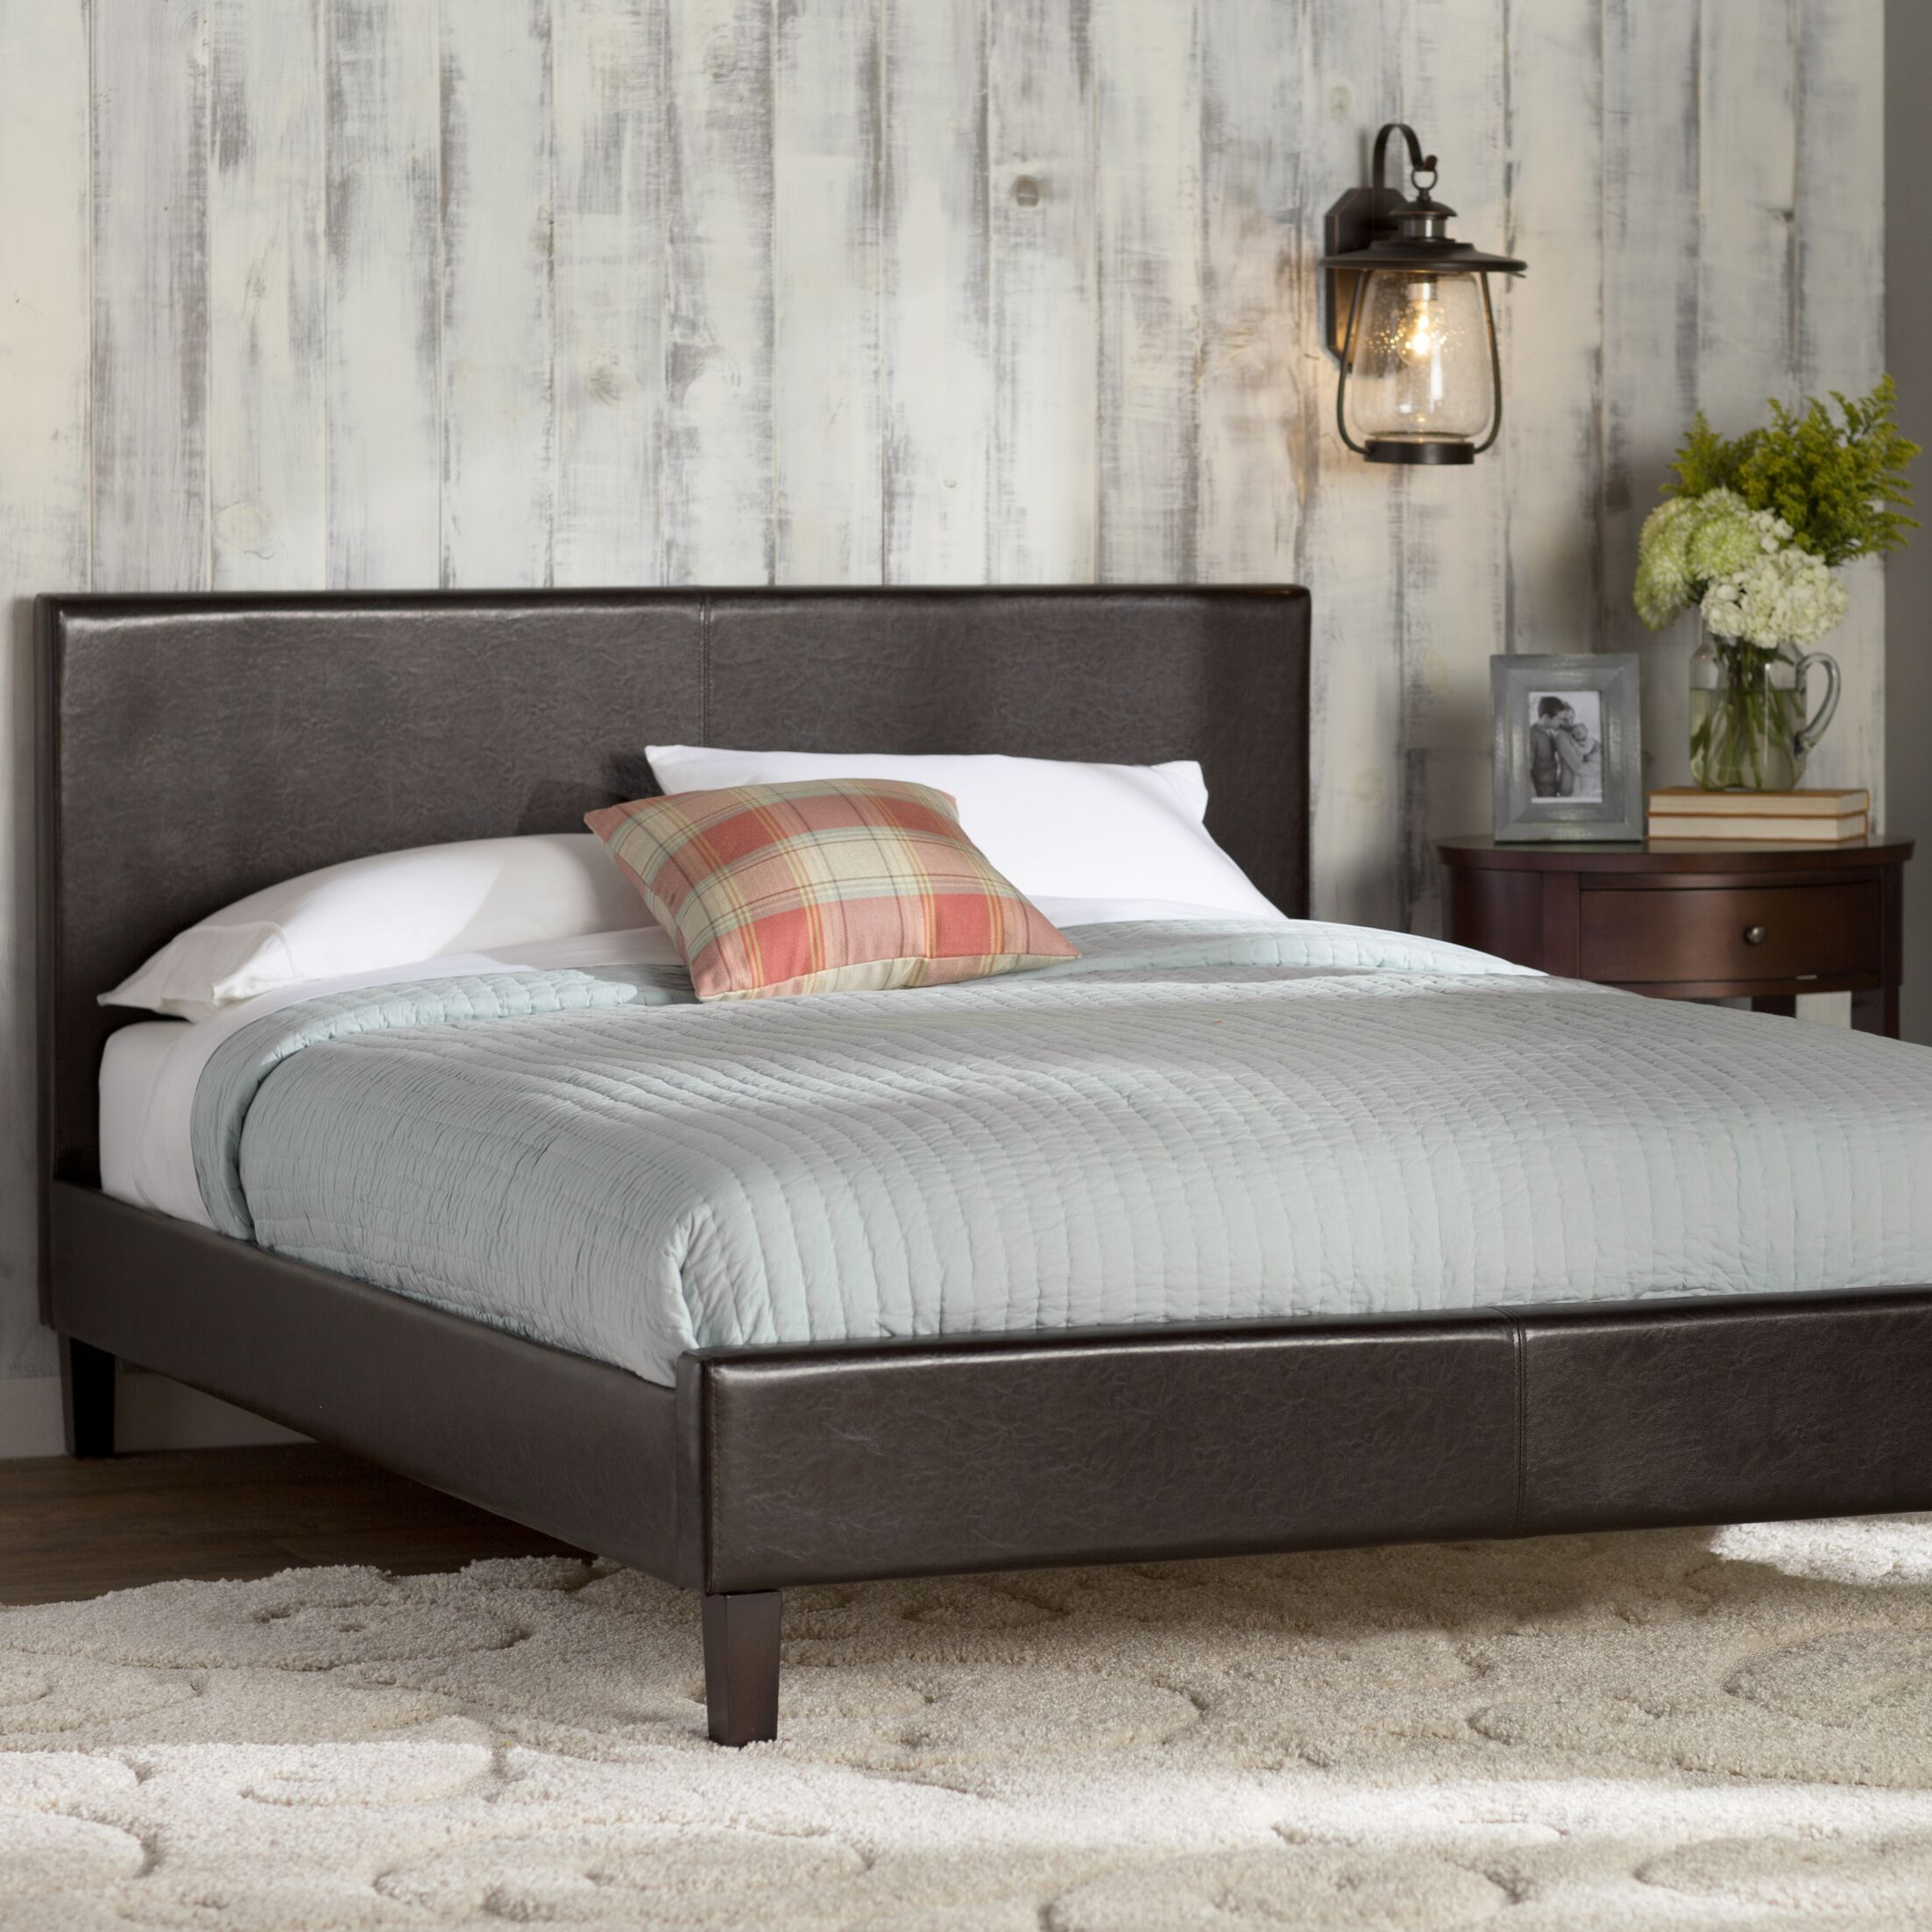 Duncansland Upholstered Platform Bed Size: Queen, Color: Brown